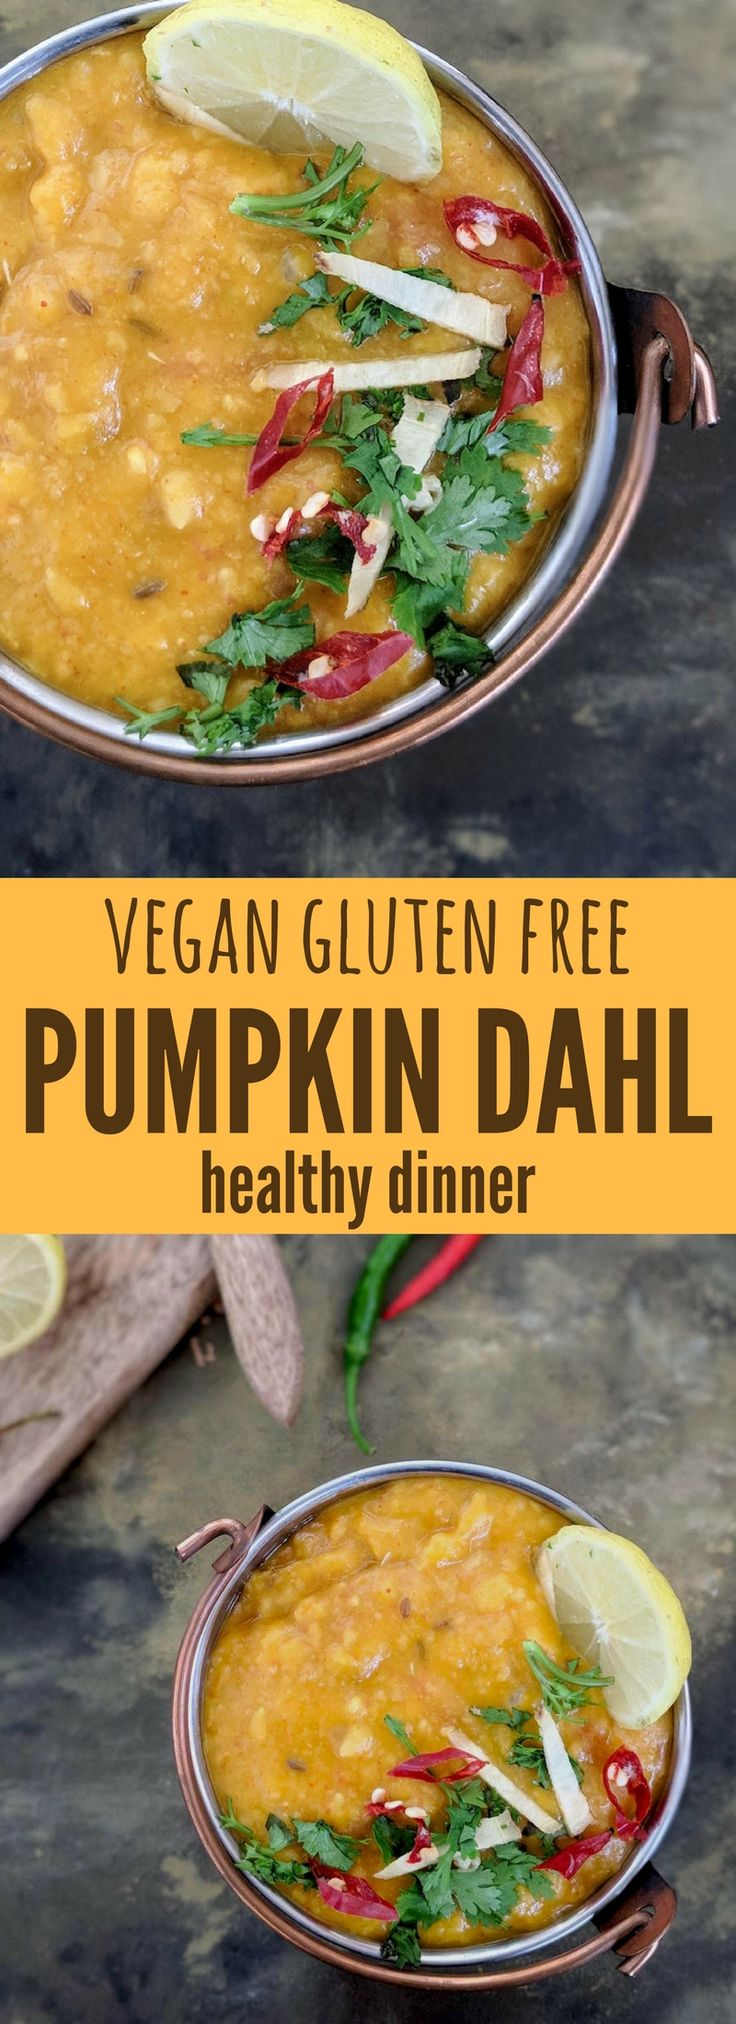 A vegan and gluten free pumpkin dahl recipe with lots of ginger  - makes a quick dinner with some brown rice or quinoa. #pumpkinrecipes    Get the recipe on www.saffrontrail.com  . . . - pumpkin recipes - best pumpkin recipes - pumpkin recipes dinner - pumpkin lentils - pumpkin lentils curry - easy Indian recipes - gluten free vegan recipes